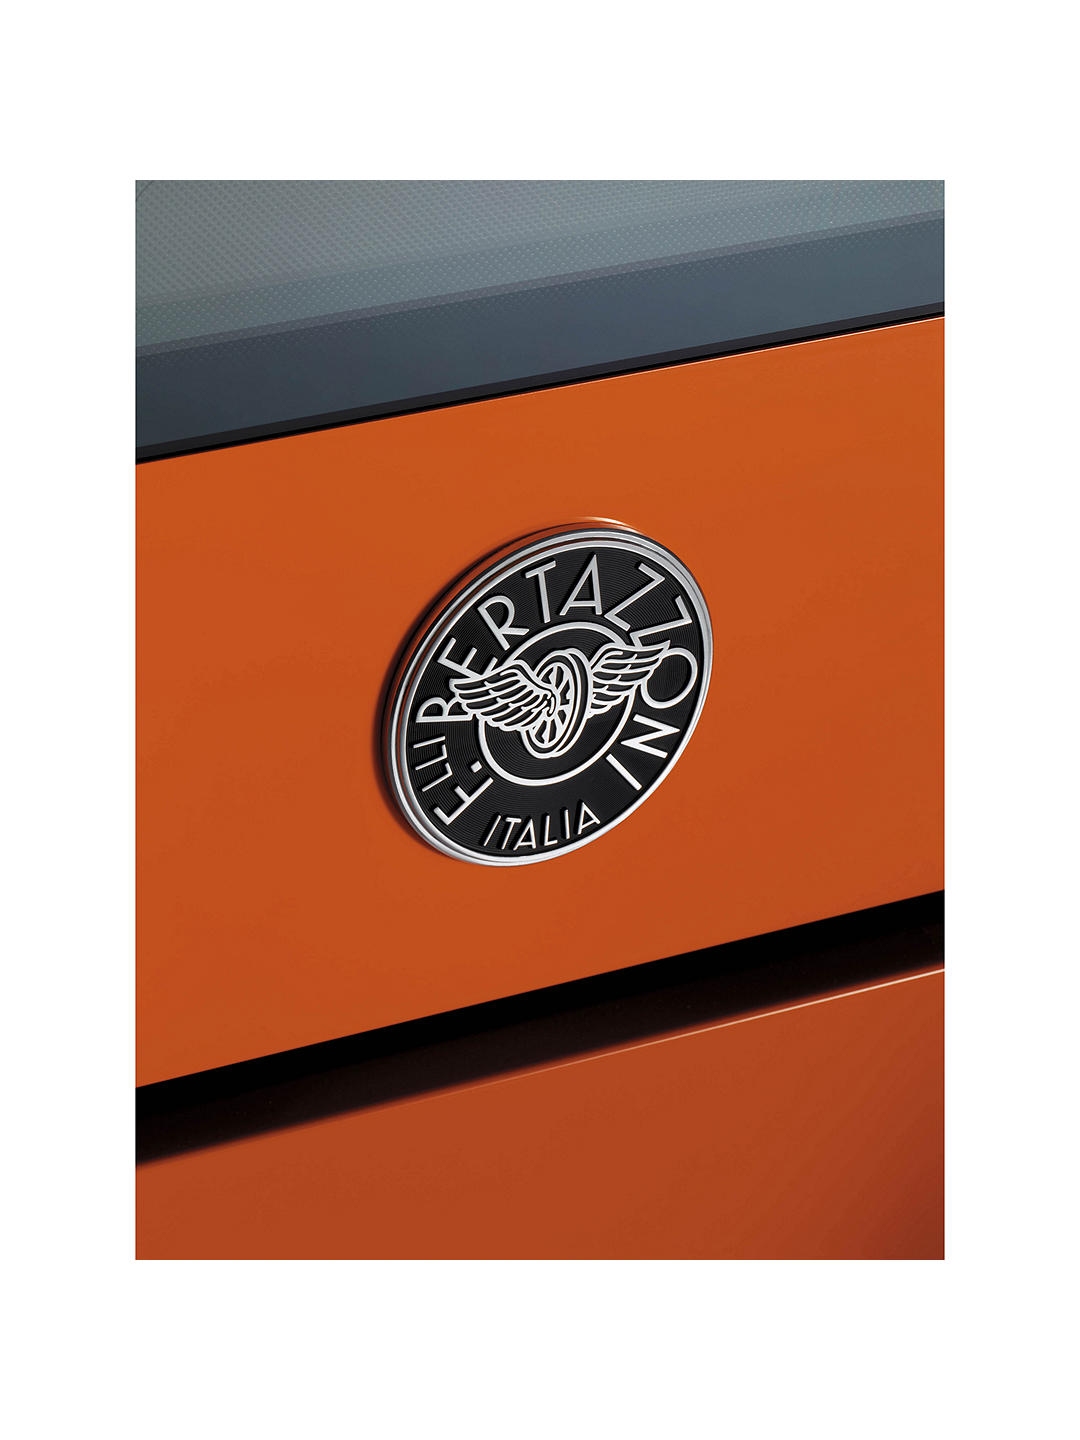 Buy Bertazzoni Professional Series PRO90-5I-MFE-S-ART 90cm Electric Induction Single Range Cooker, Orange Online at johnlewis.com